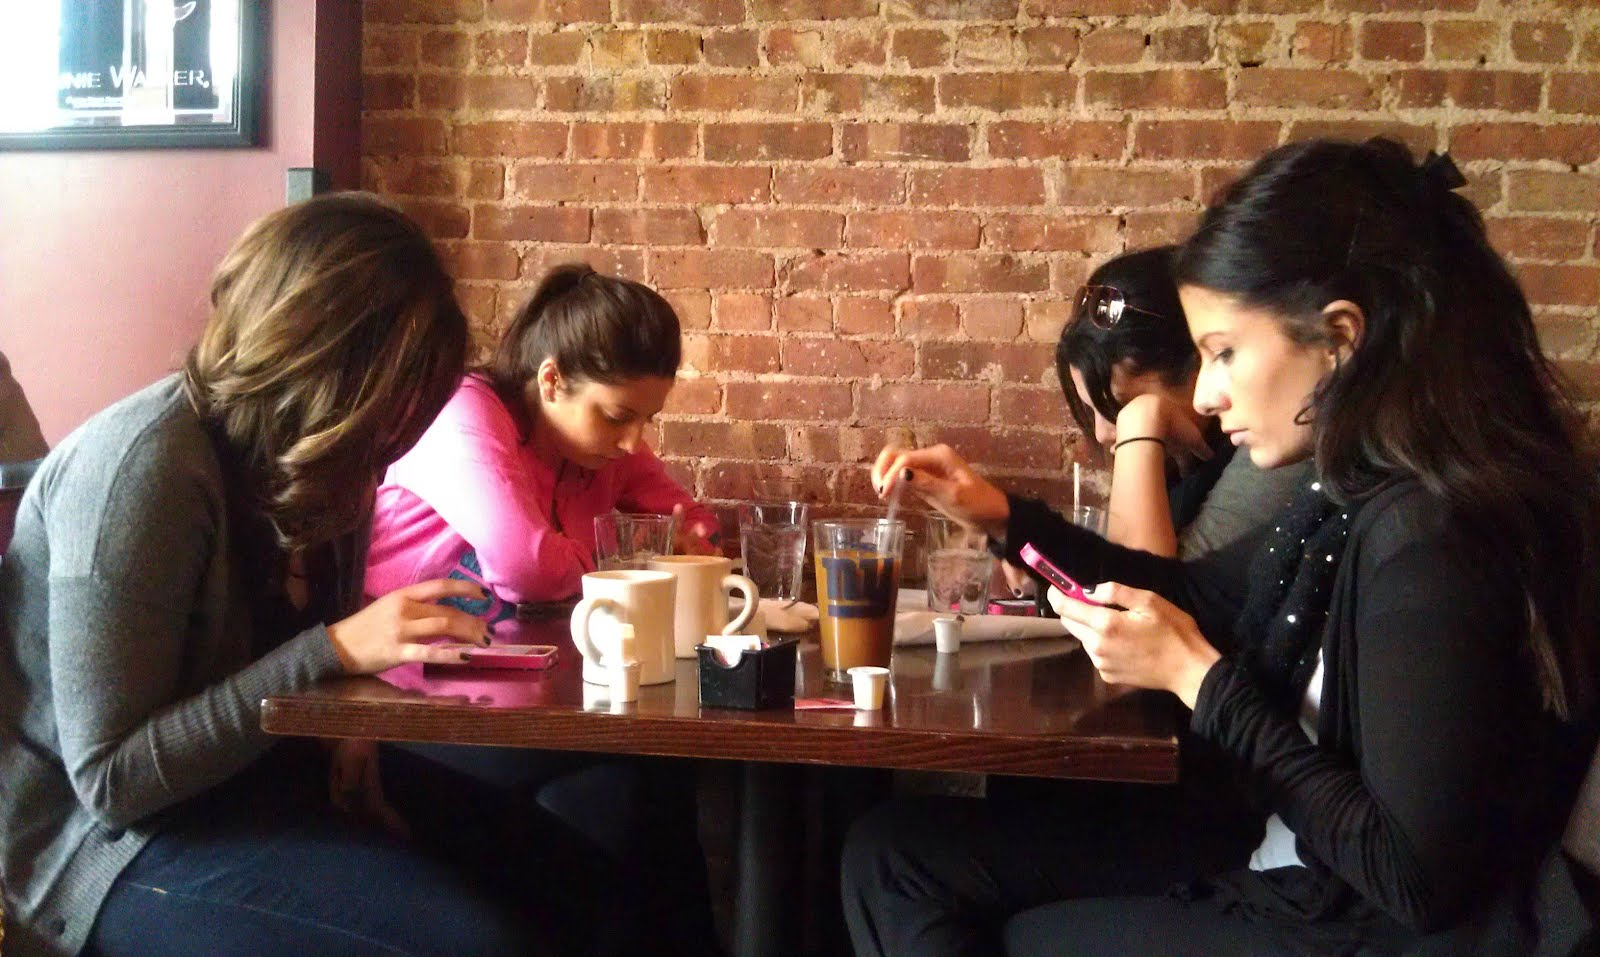 Women on phones